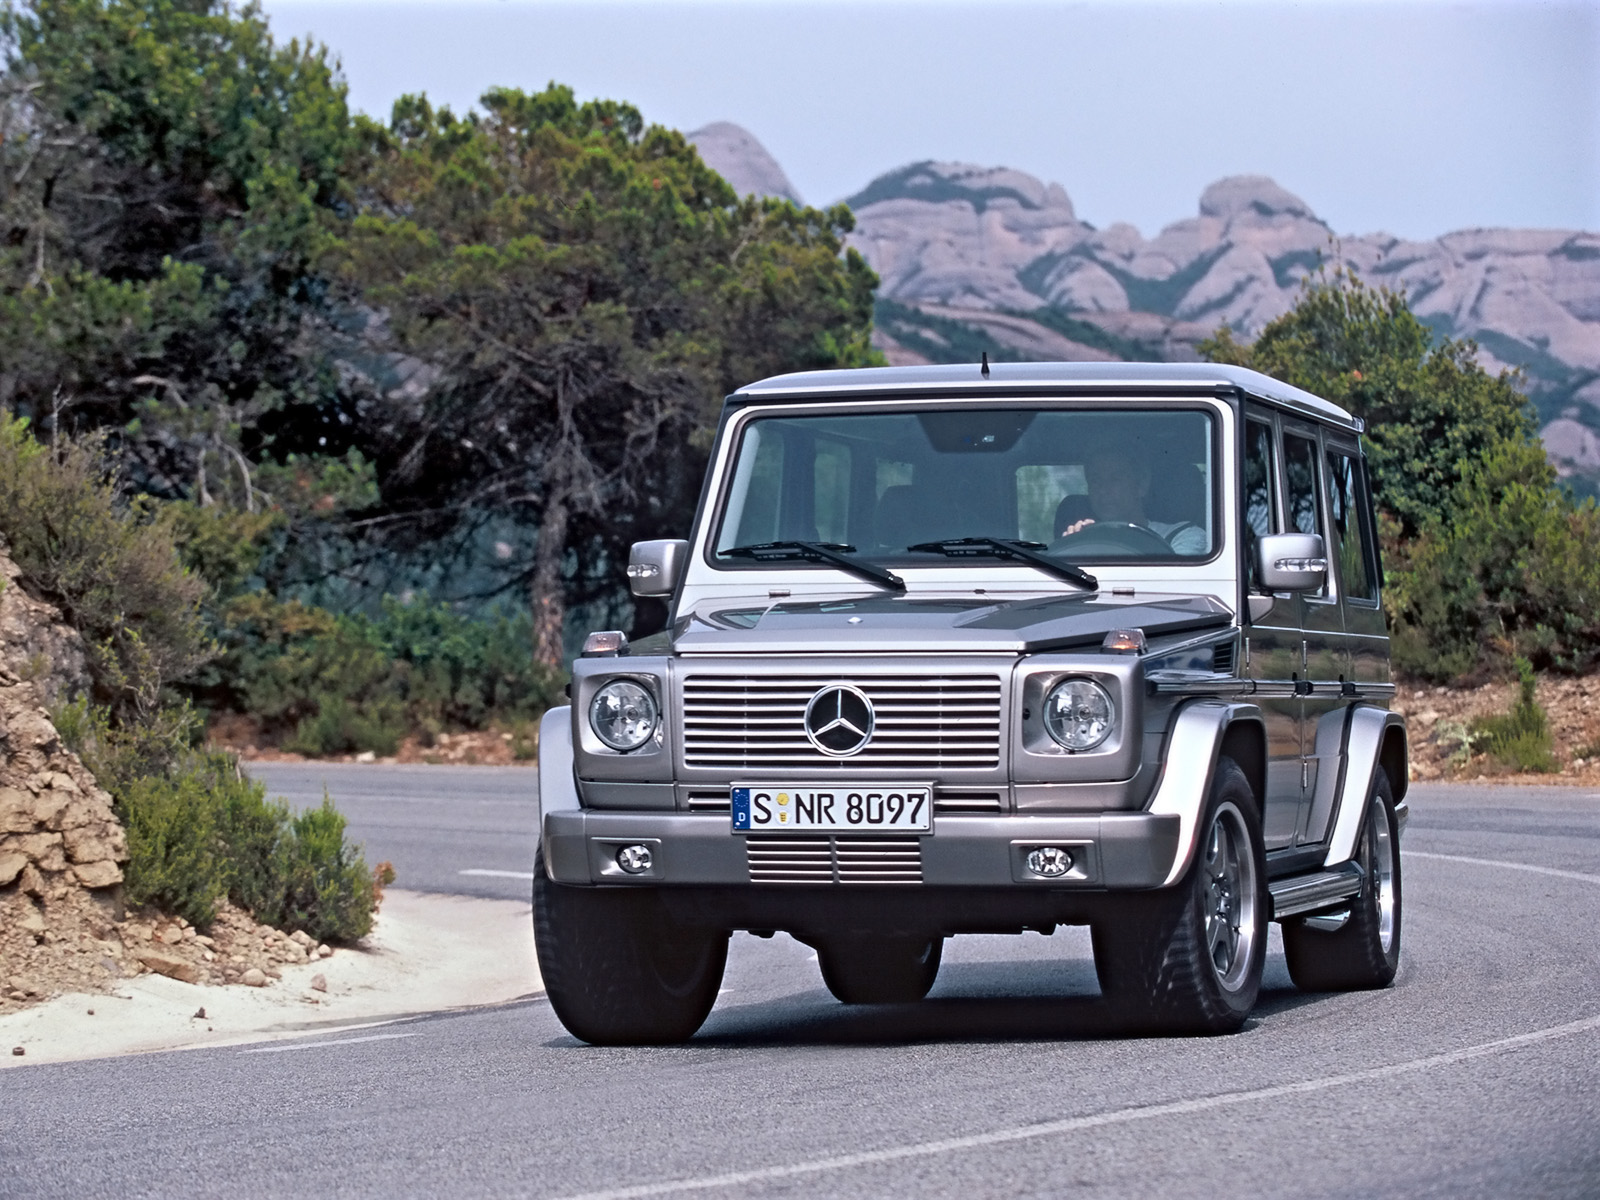 mercedes benz g class amg picture 37500 mercedes benz. Black Bedroom Furniture Sets. Home Design Ideas